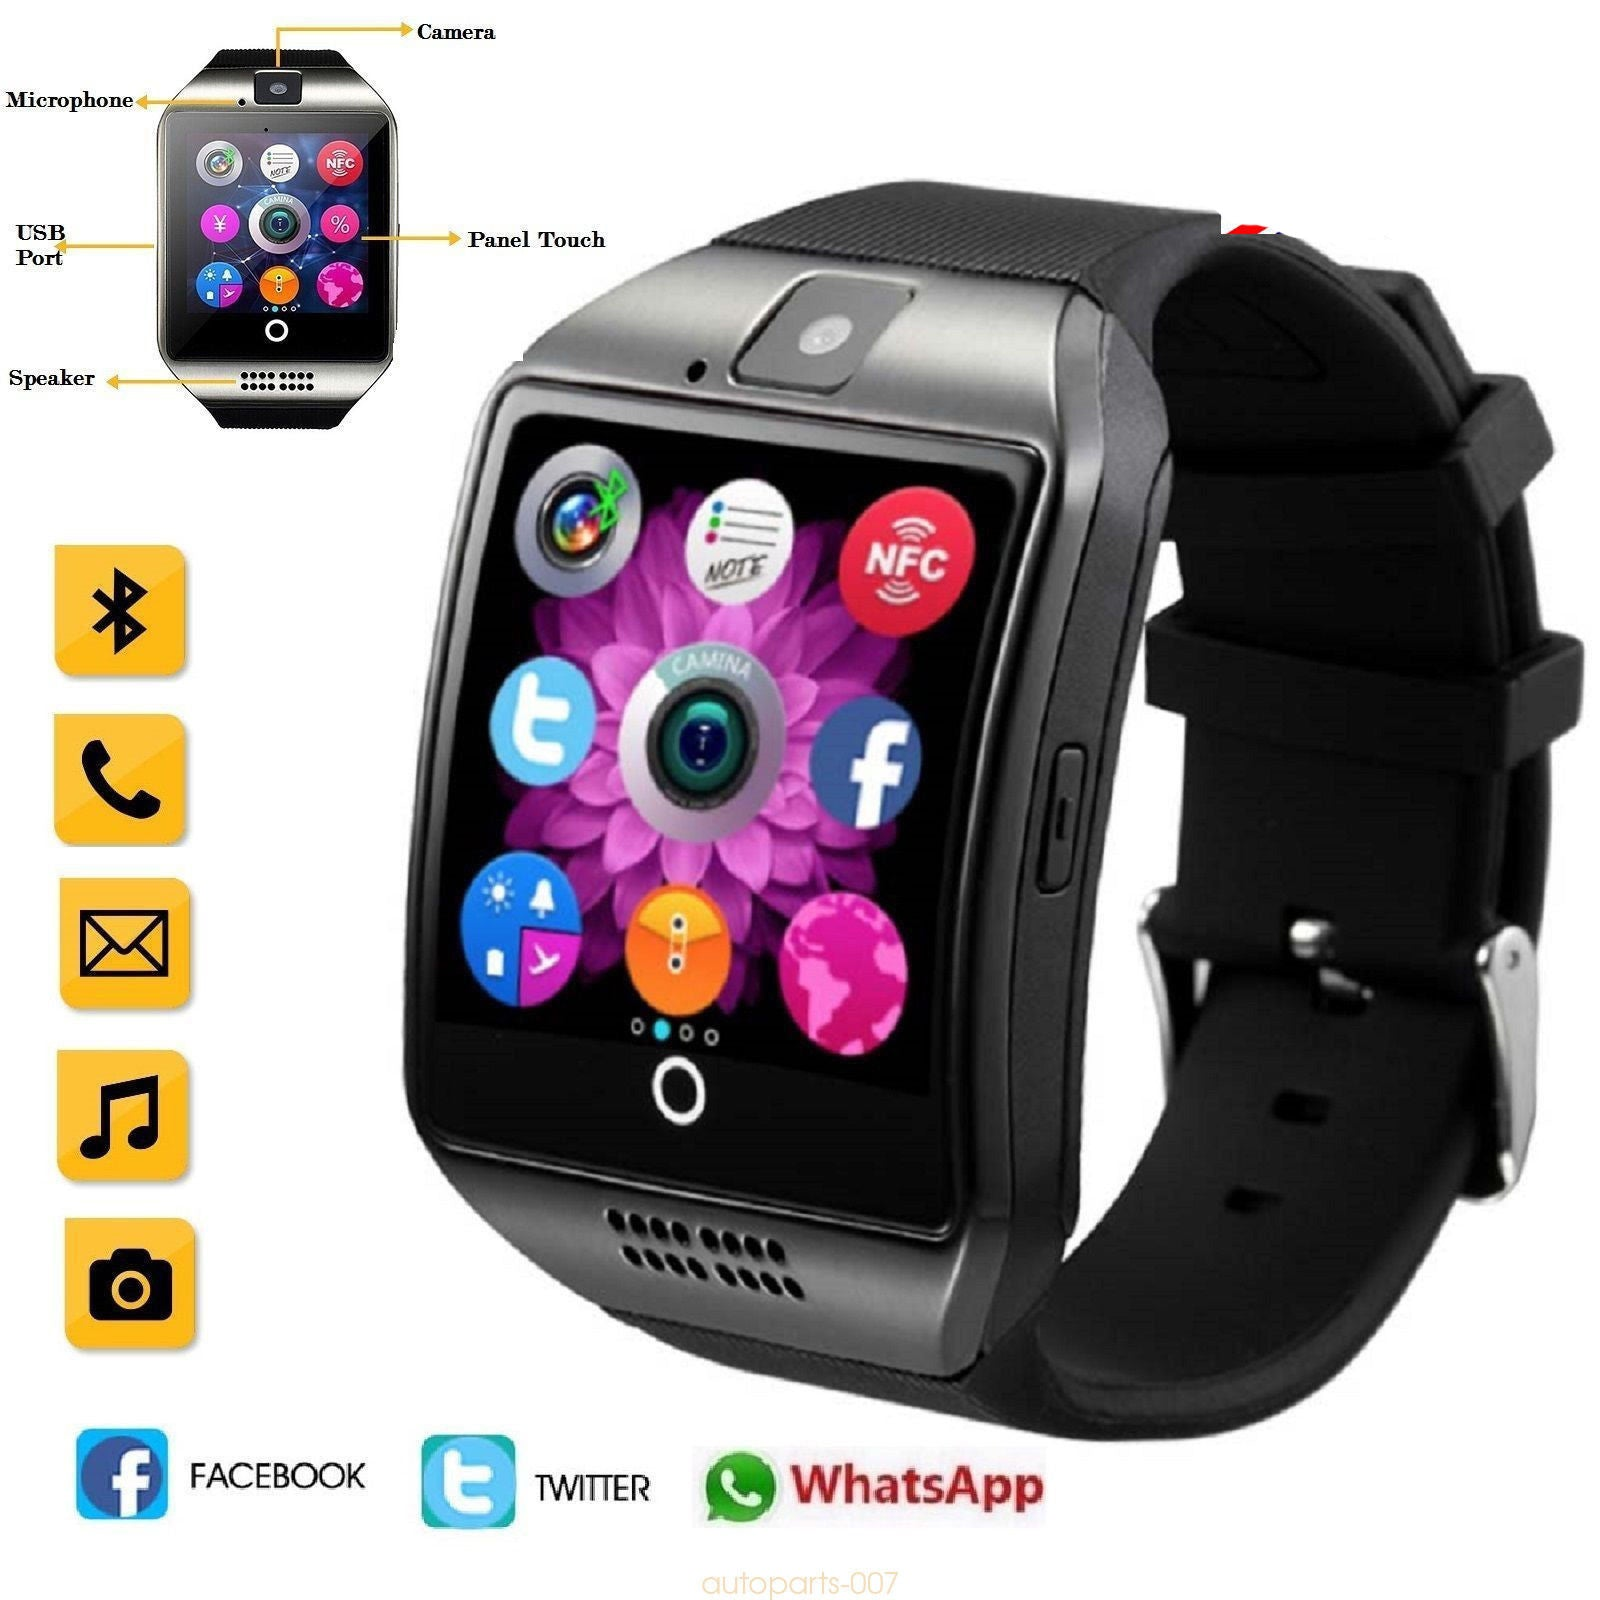 in black sim phone generic smart mobile accessories camera watch computers with dp bluetooth and amazon watches